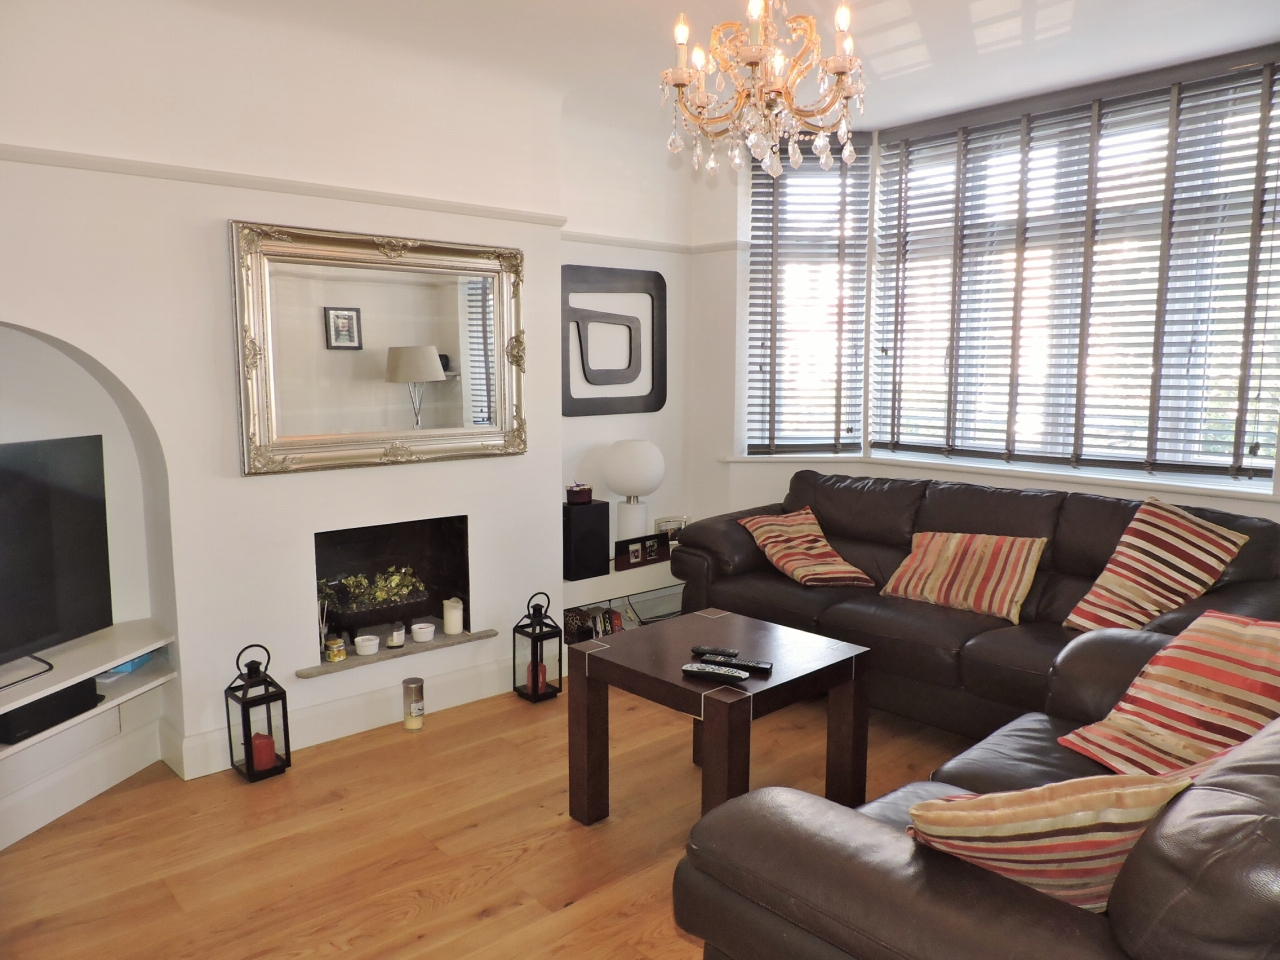 3 bedroom semi-detached house SSTC in New Malden - Photograph 3